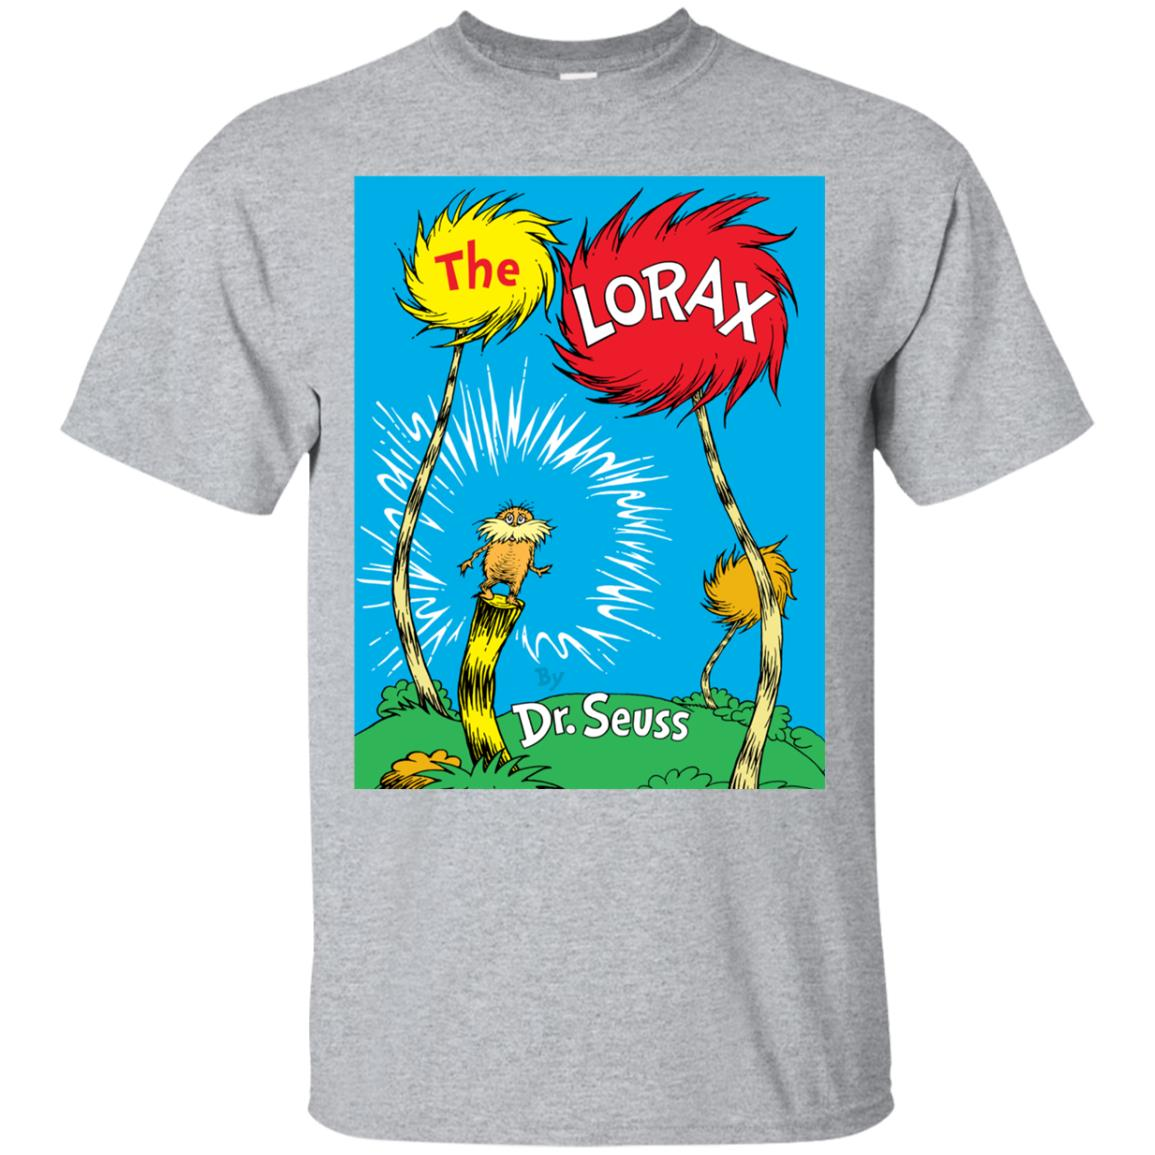 Dr. Seuss The Lorax Book Cover T-shirt 99promocode